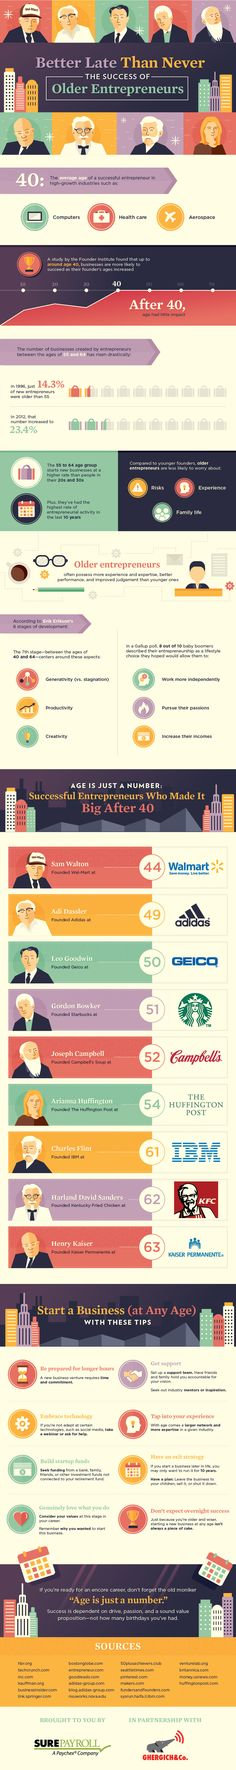 success of old entrepreneurs(Infographic)